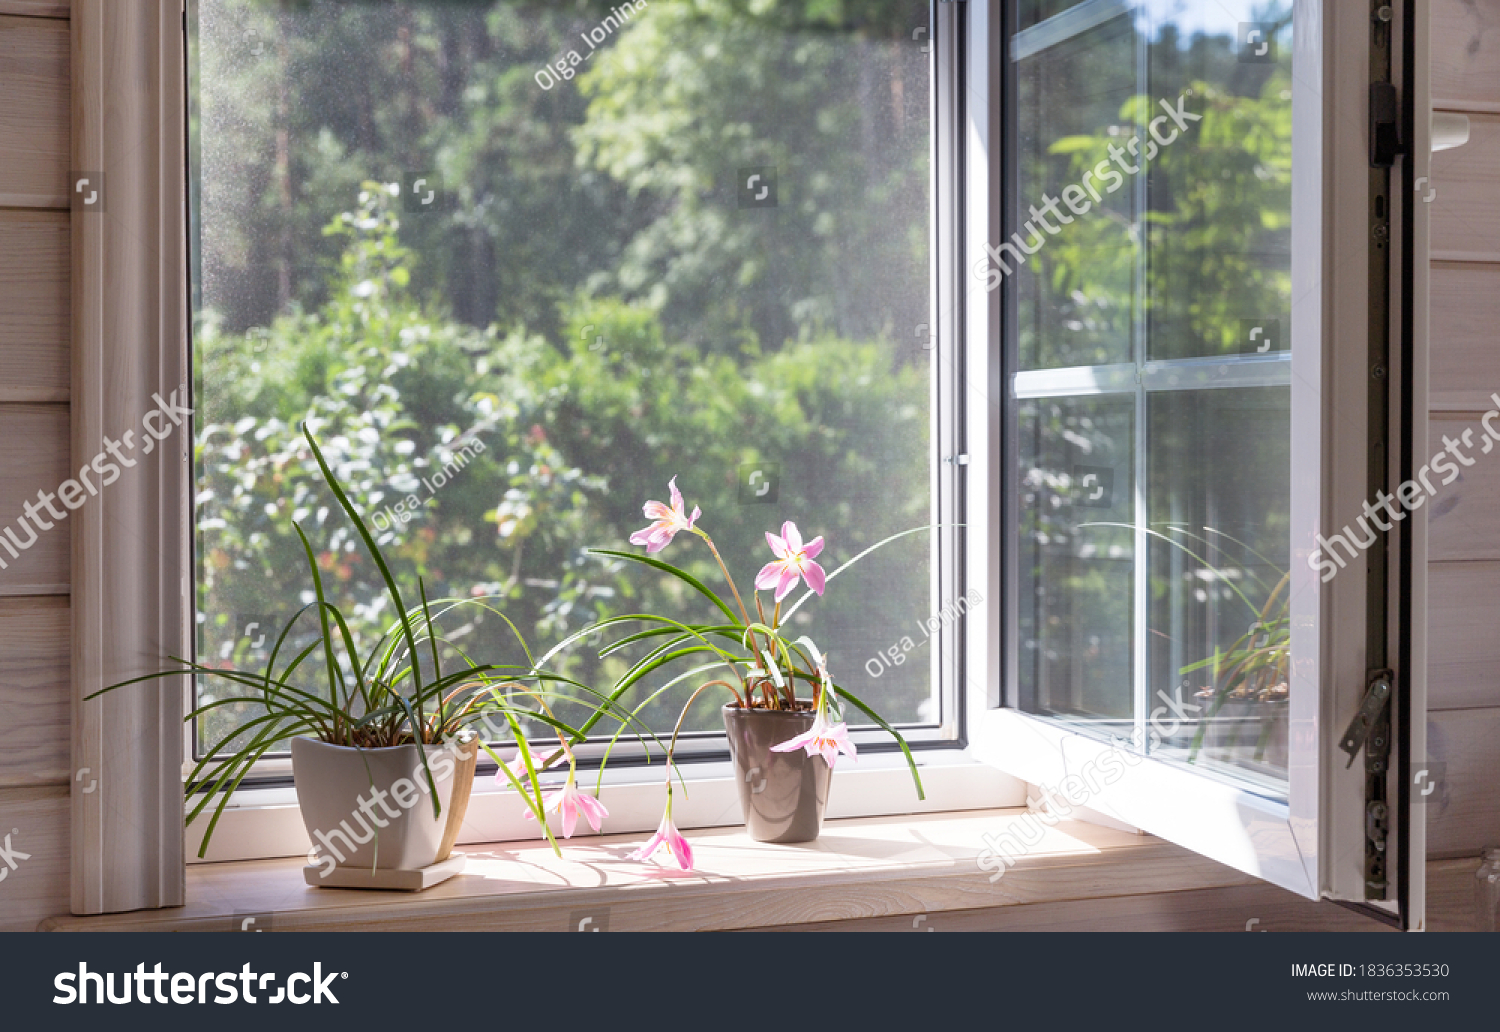 White window with mosquito net in a rustic wooden house overlooking the garden. Houseplants and a watering can on the windowsill. #1836353530